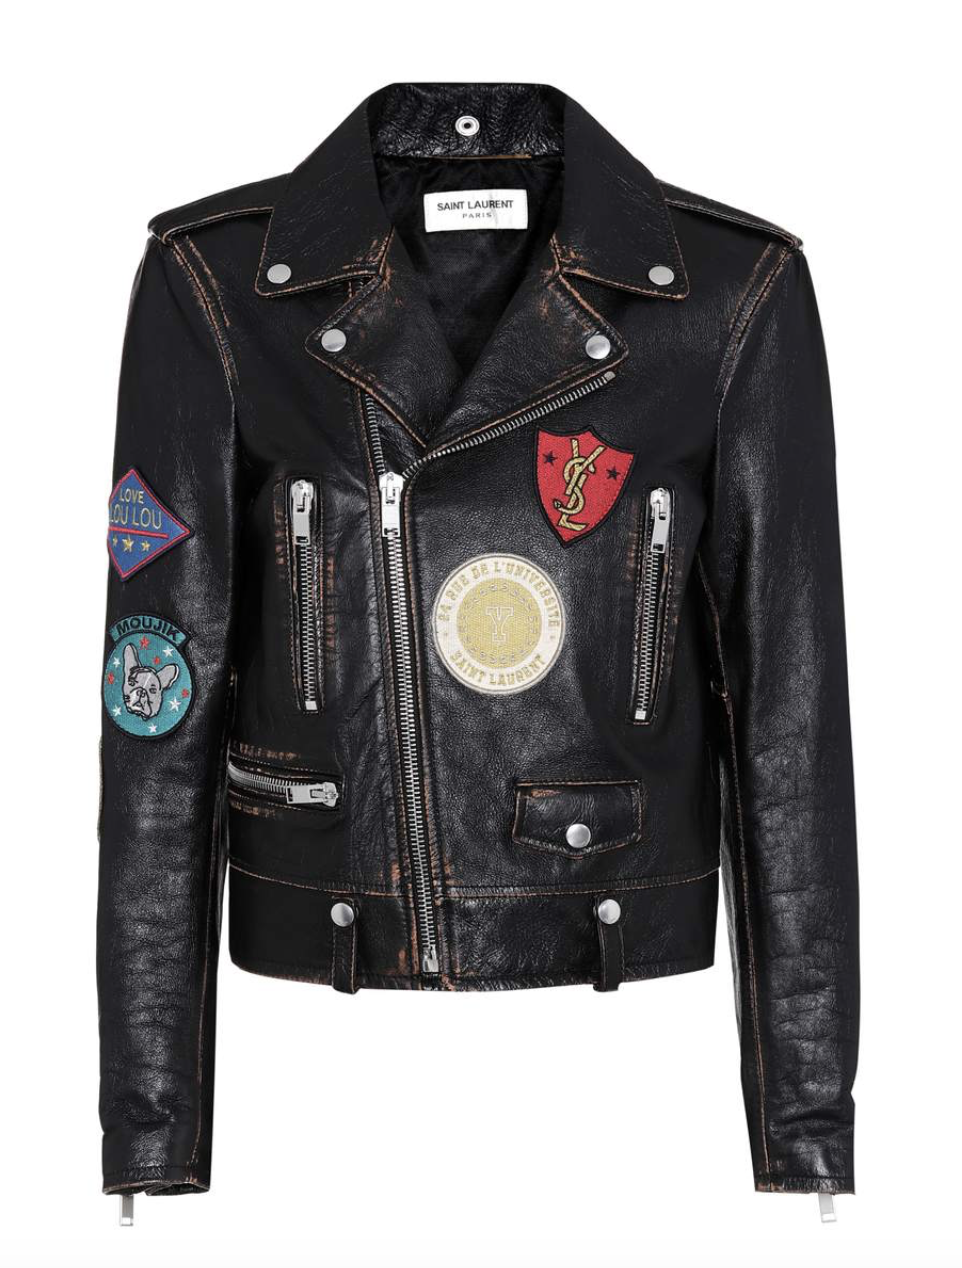 SAINT LAURENT Appliquéd leather biker jacket